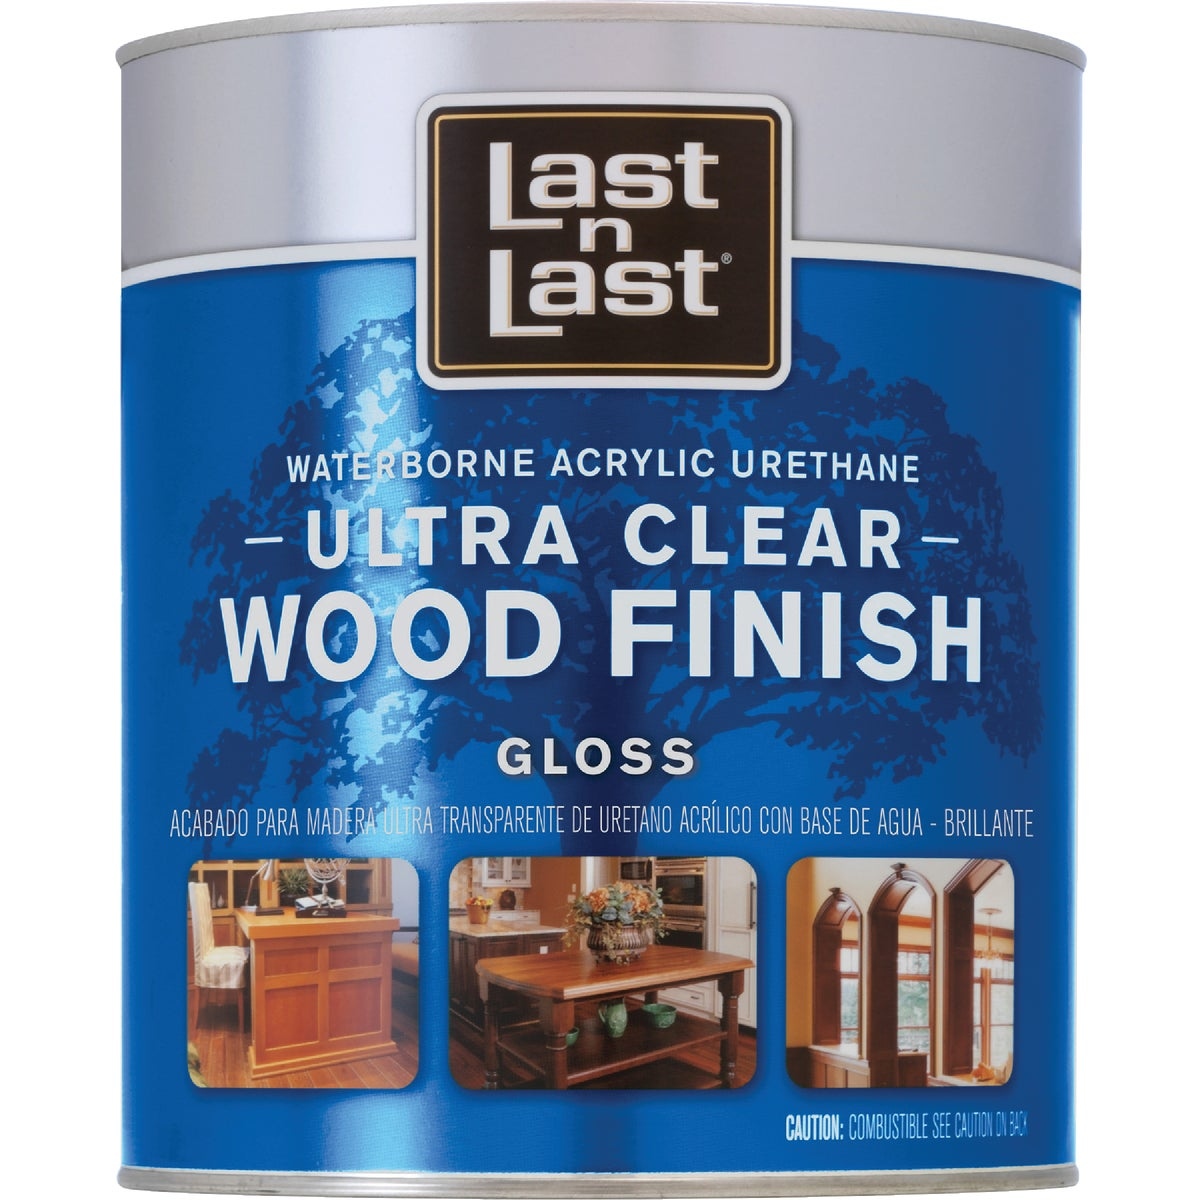 INT GLOSS W/B URETHANE - 13004 by Absolute Coatings